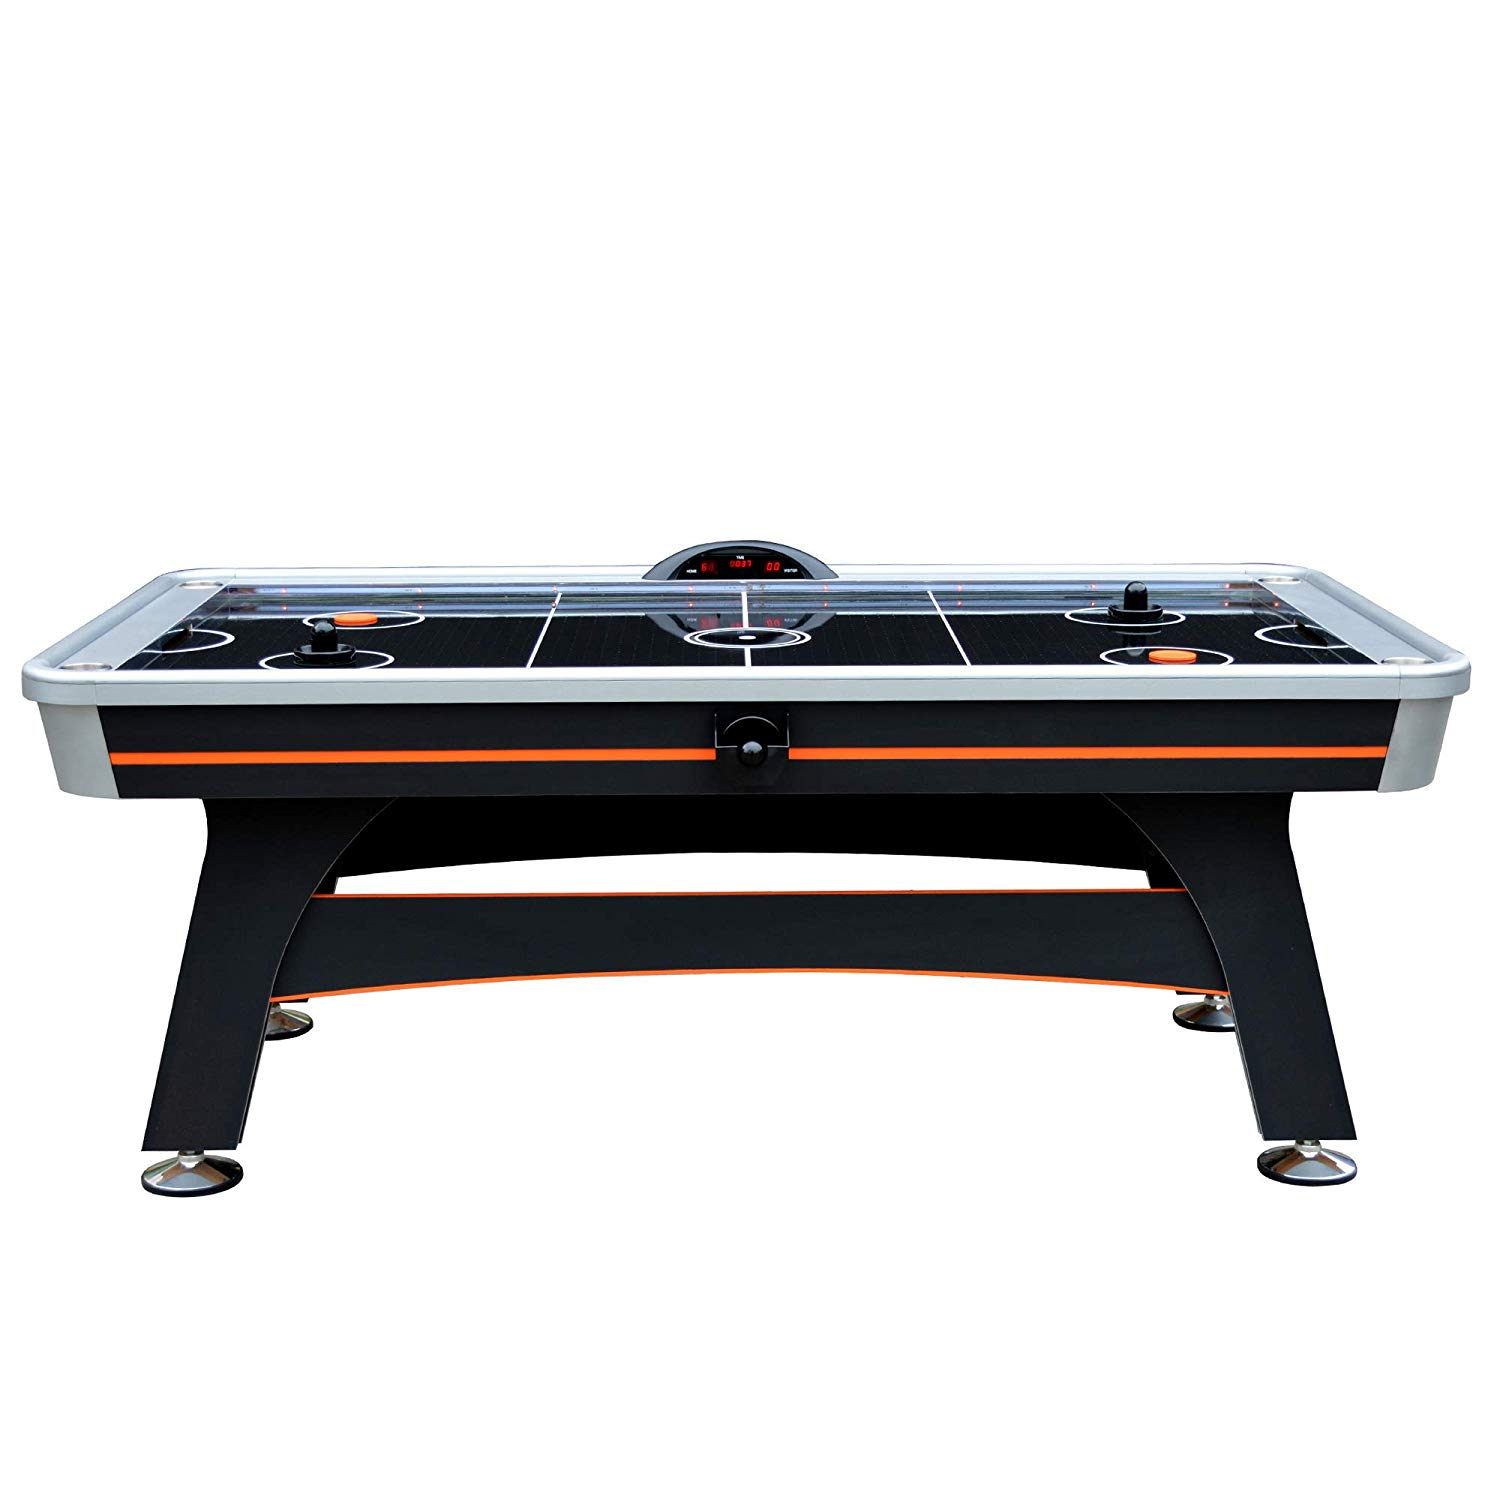 Hathaway Trailblazer Ng5011 7 Foot Air Hockey Game Table